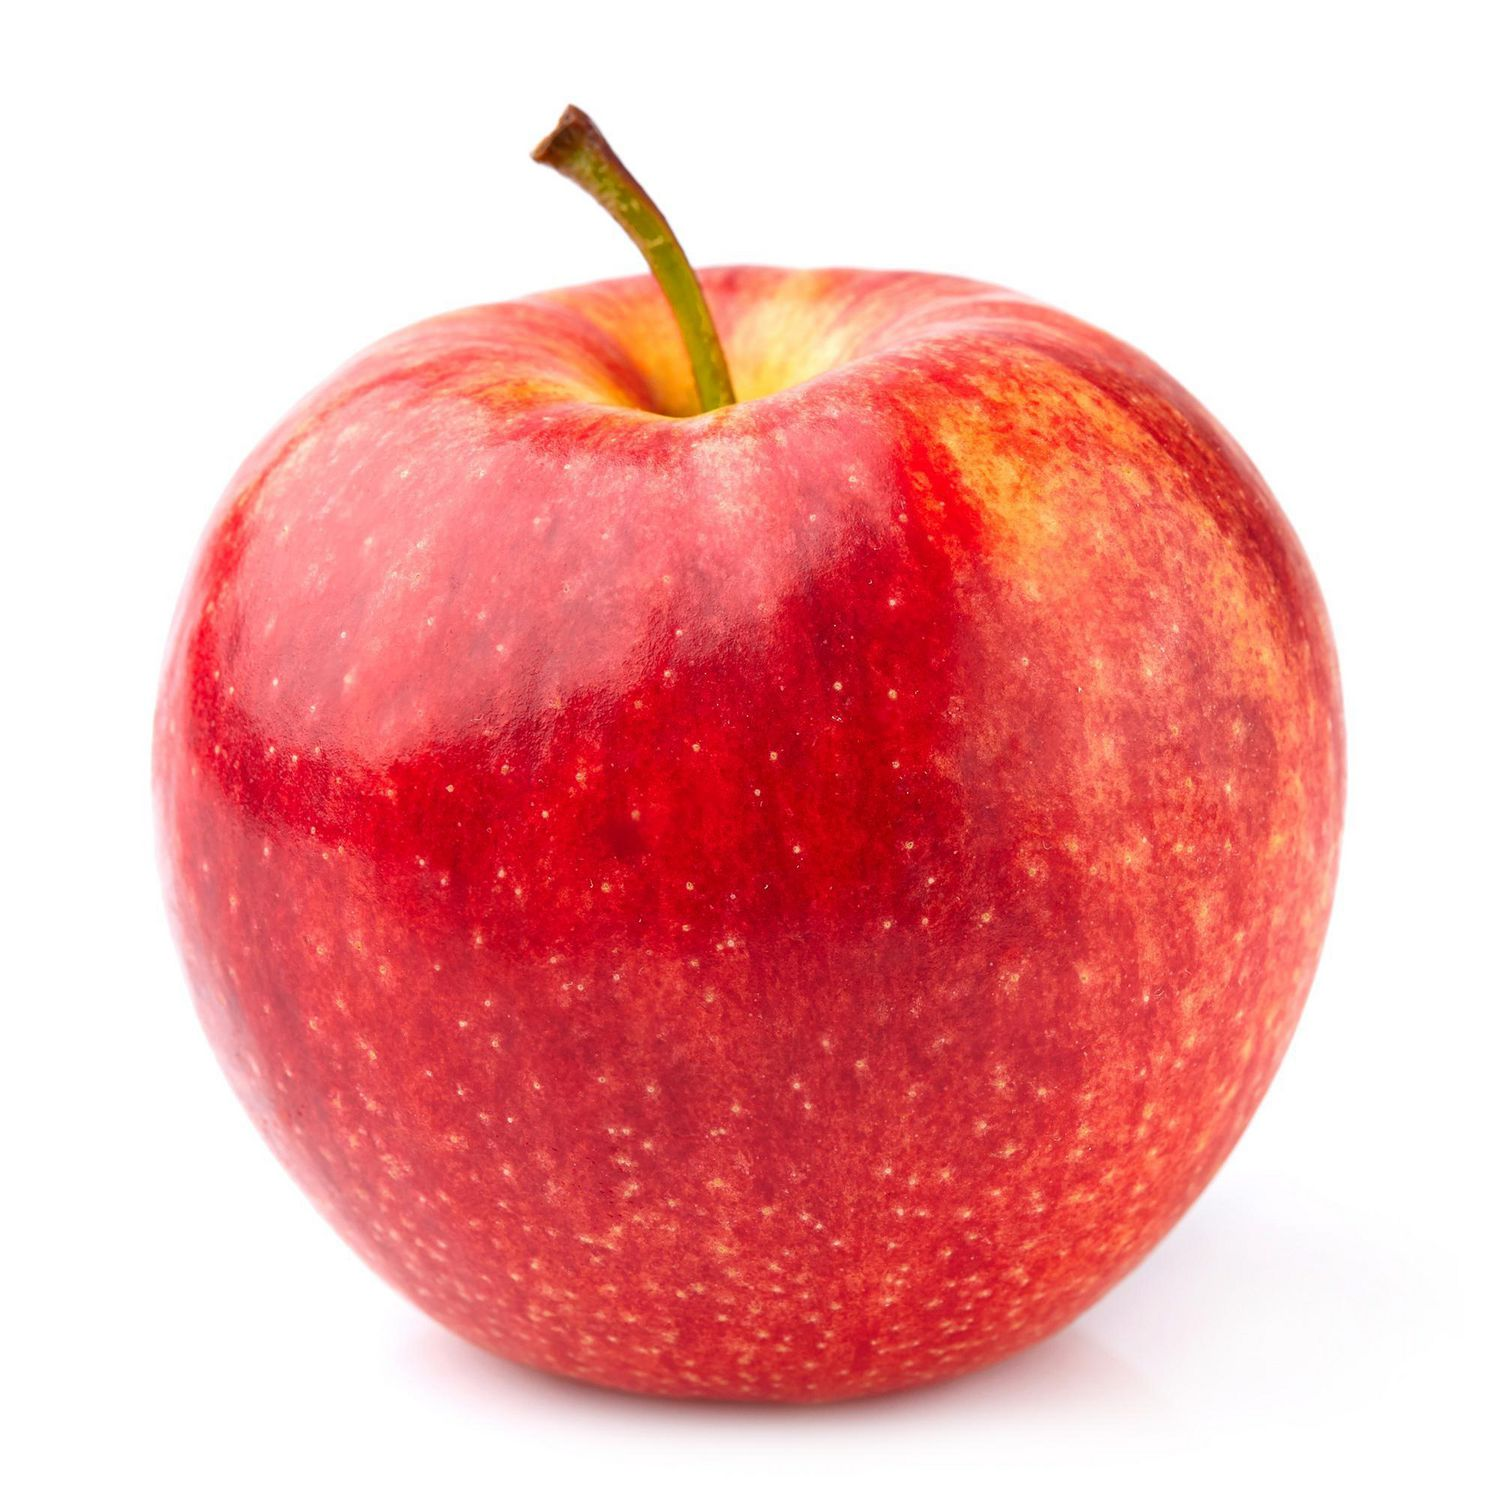 grow apples from seed